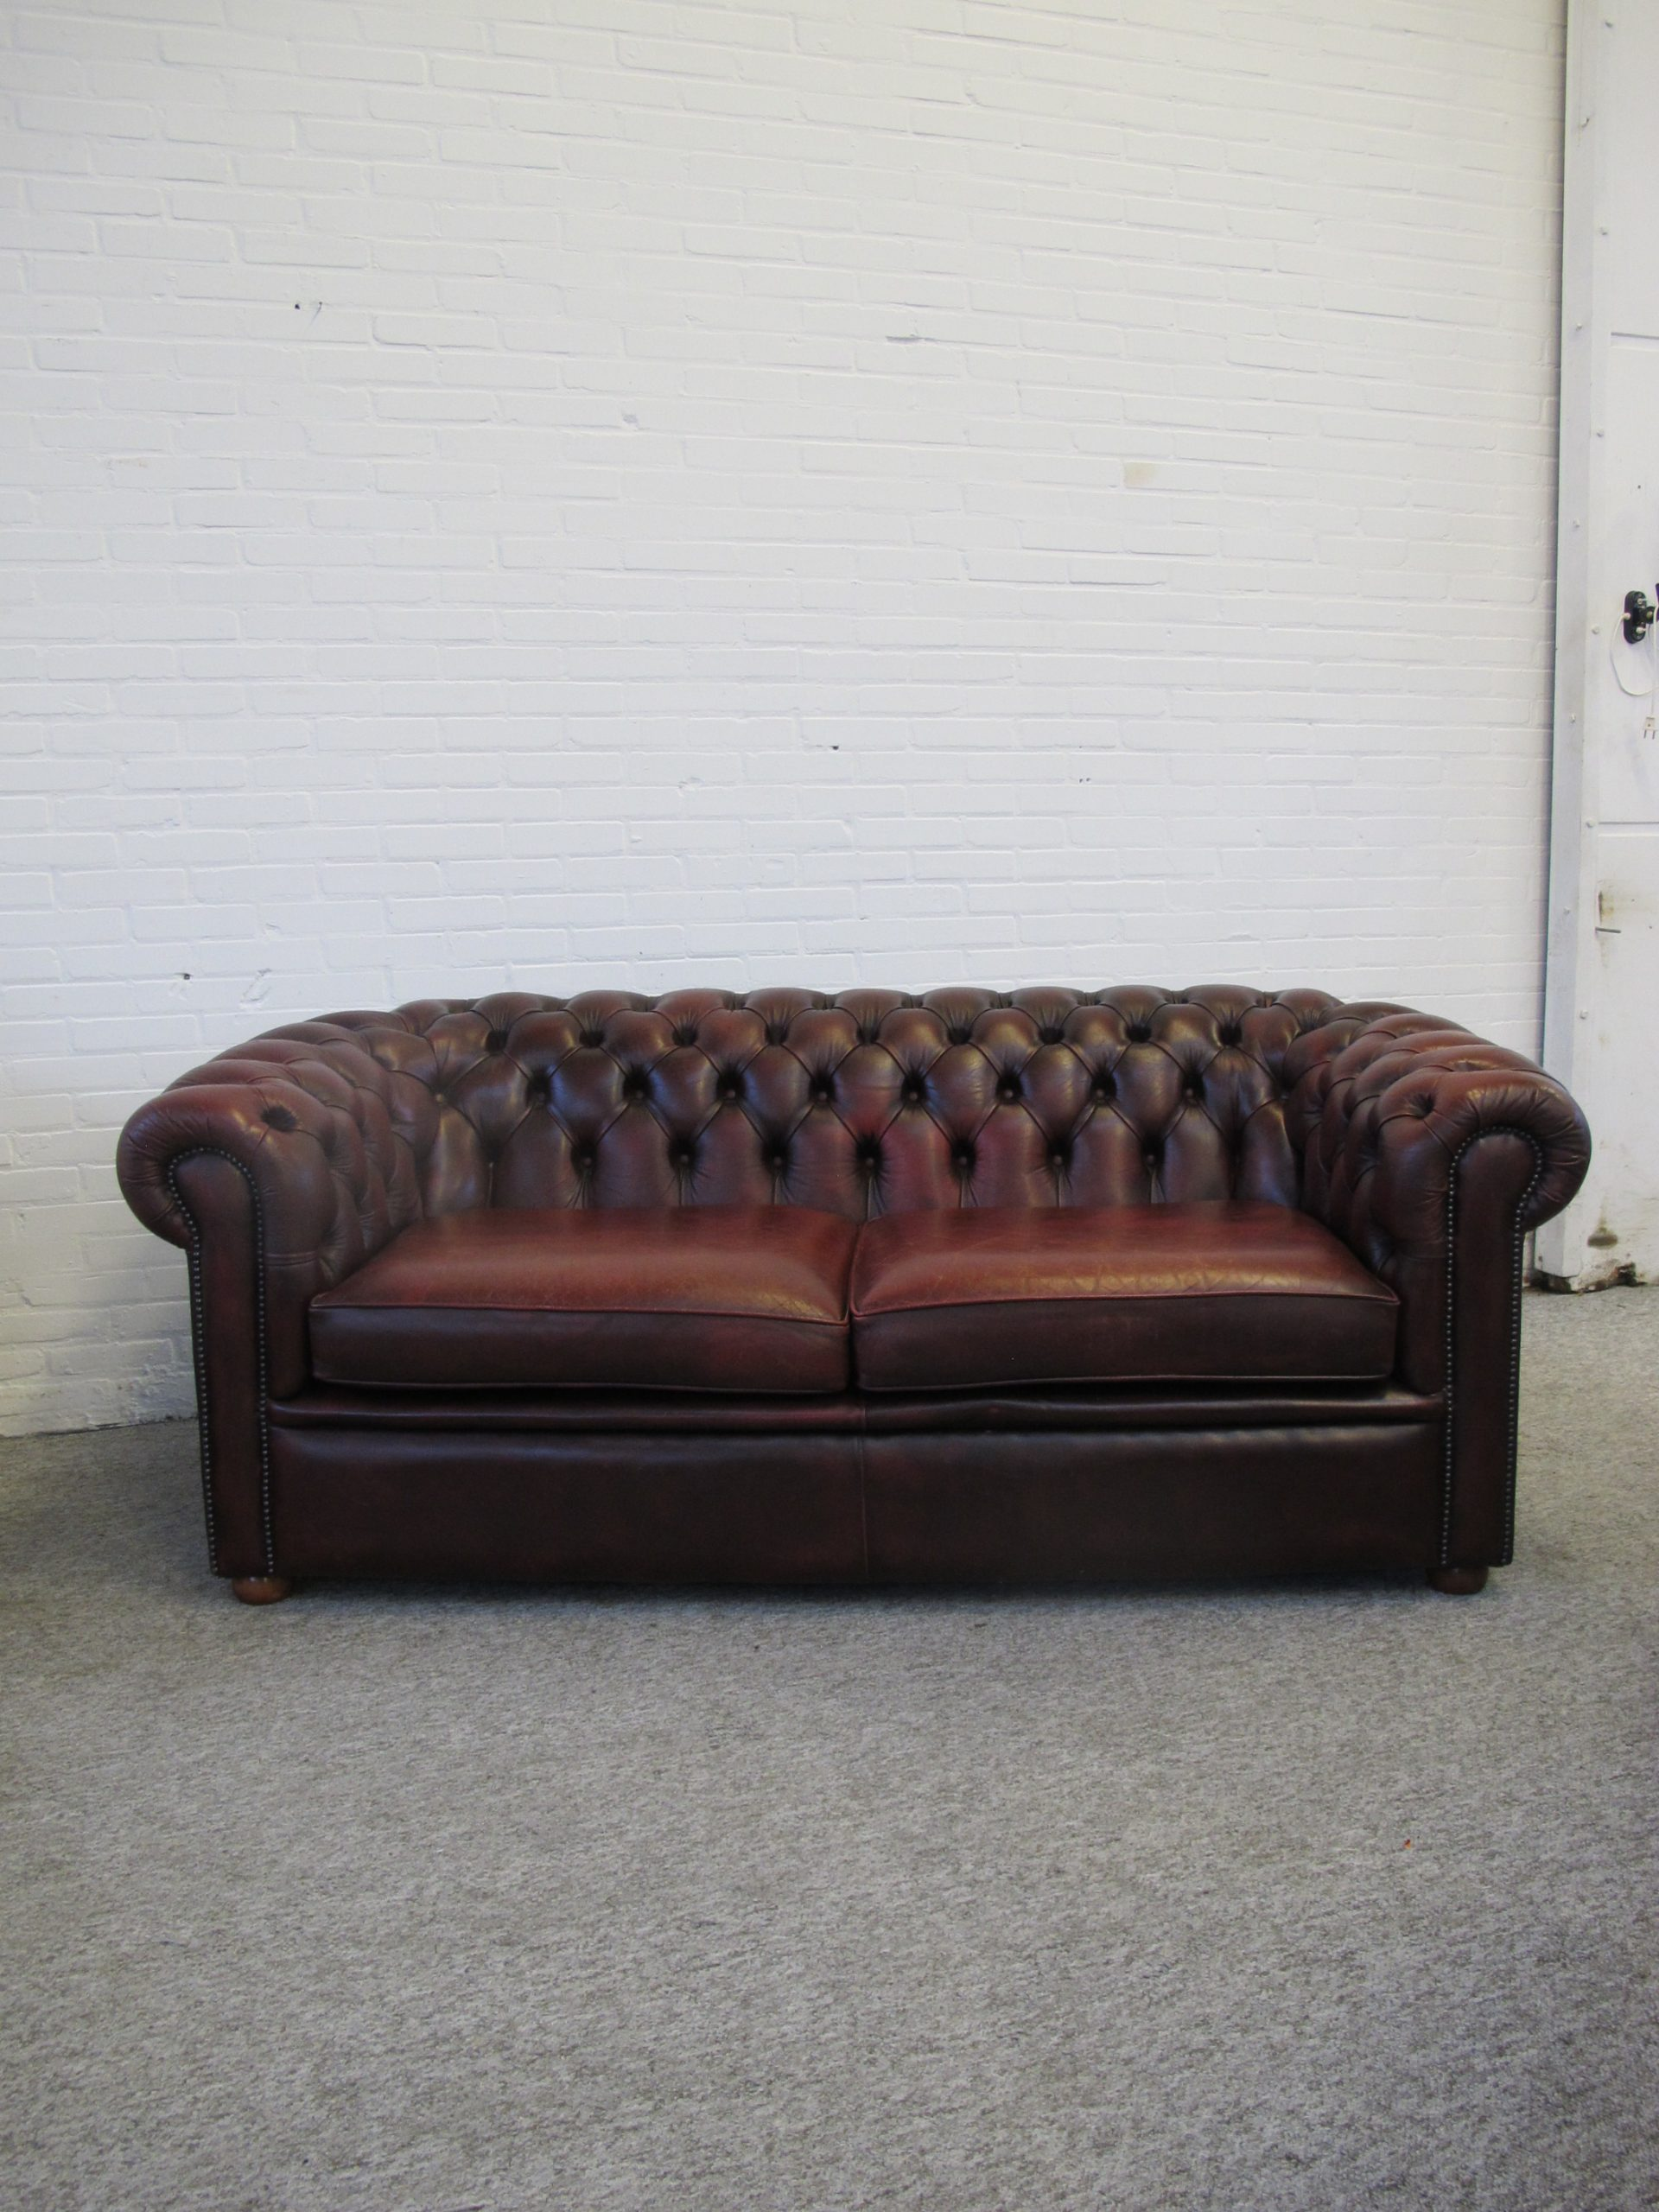 Salvale oxblood Chesterfield sofa bank vintage midcentury